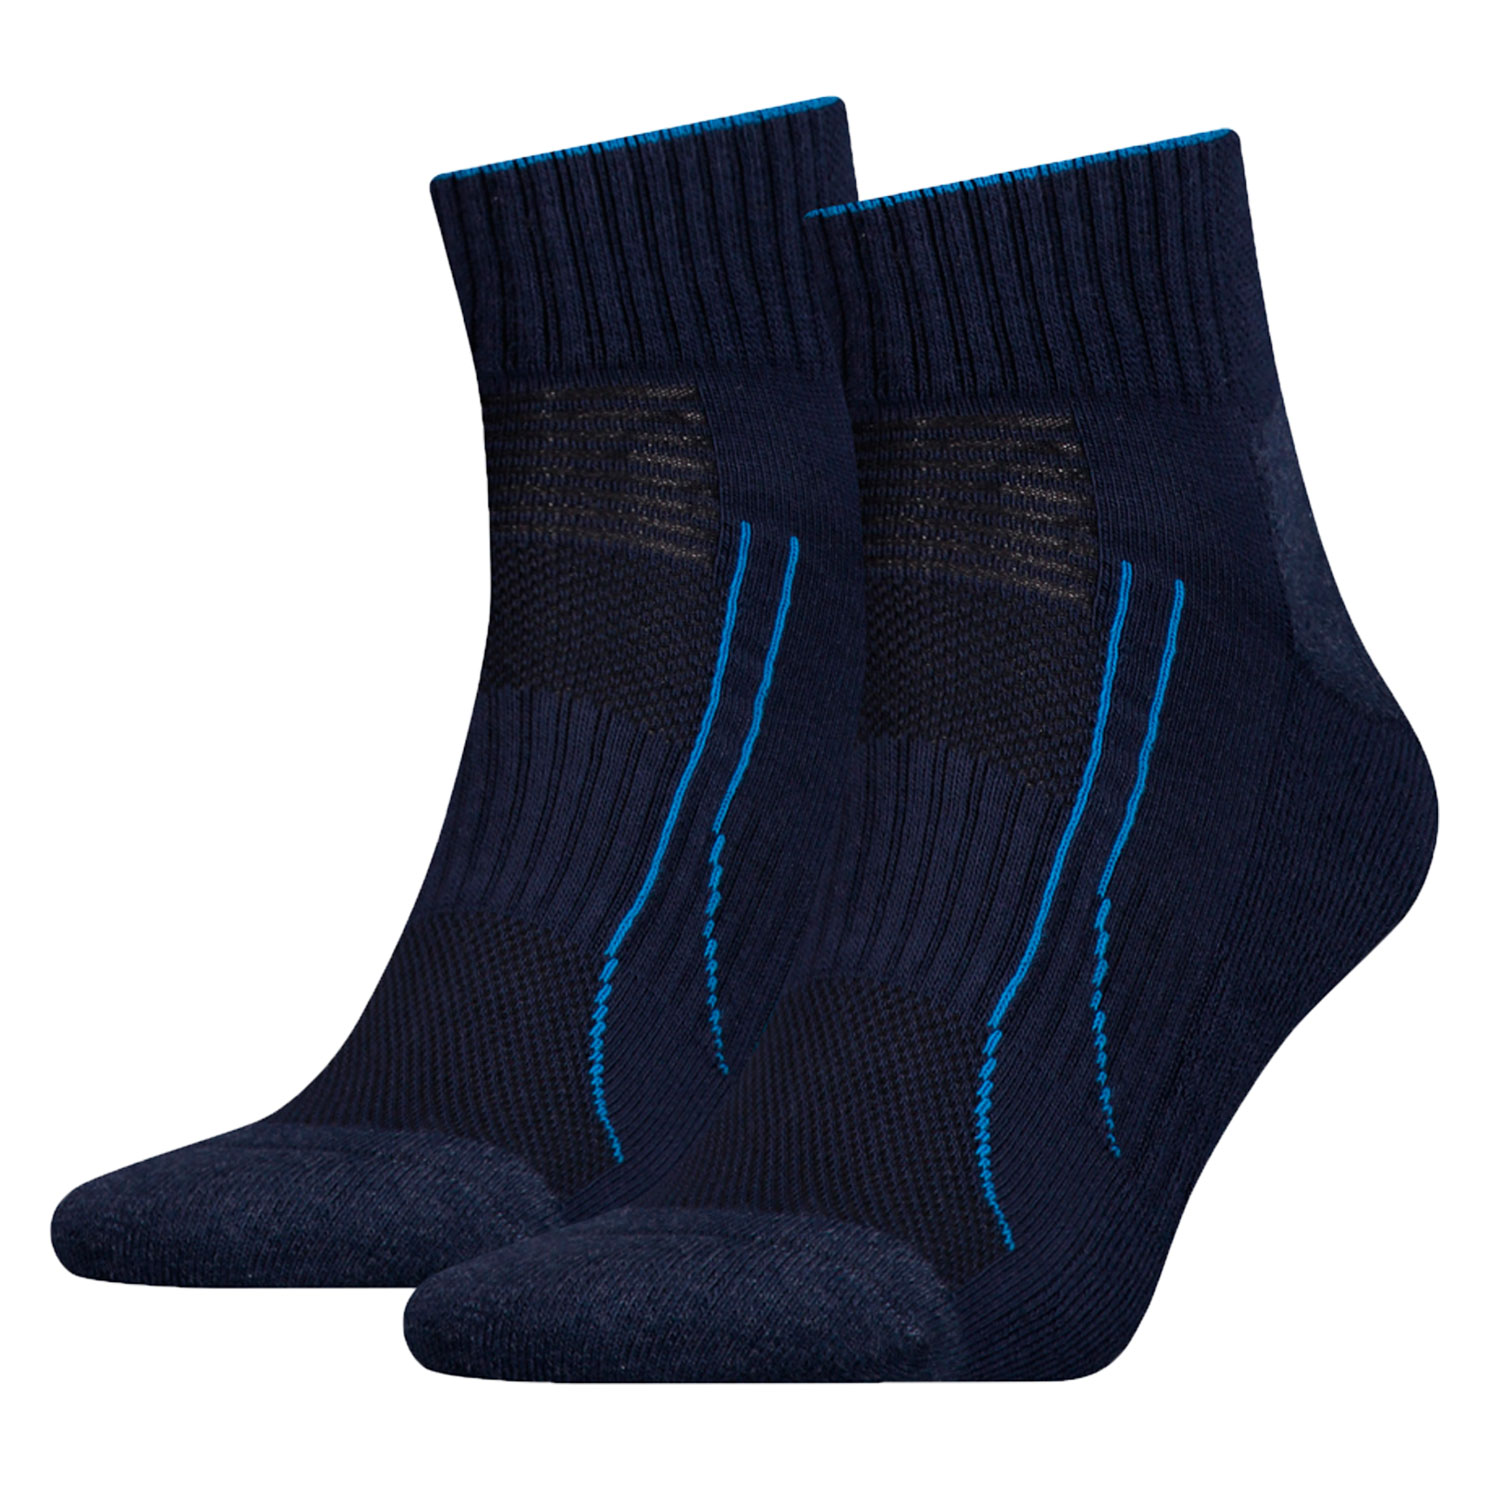 Puma Performance Train Quarter 6 Paar Kurzsocken Sportsocken Allround Sports – Bild 3